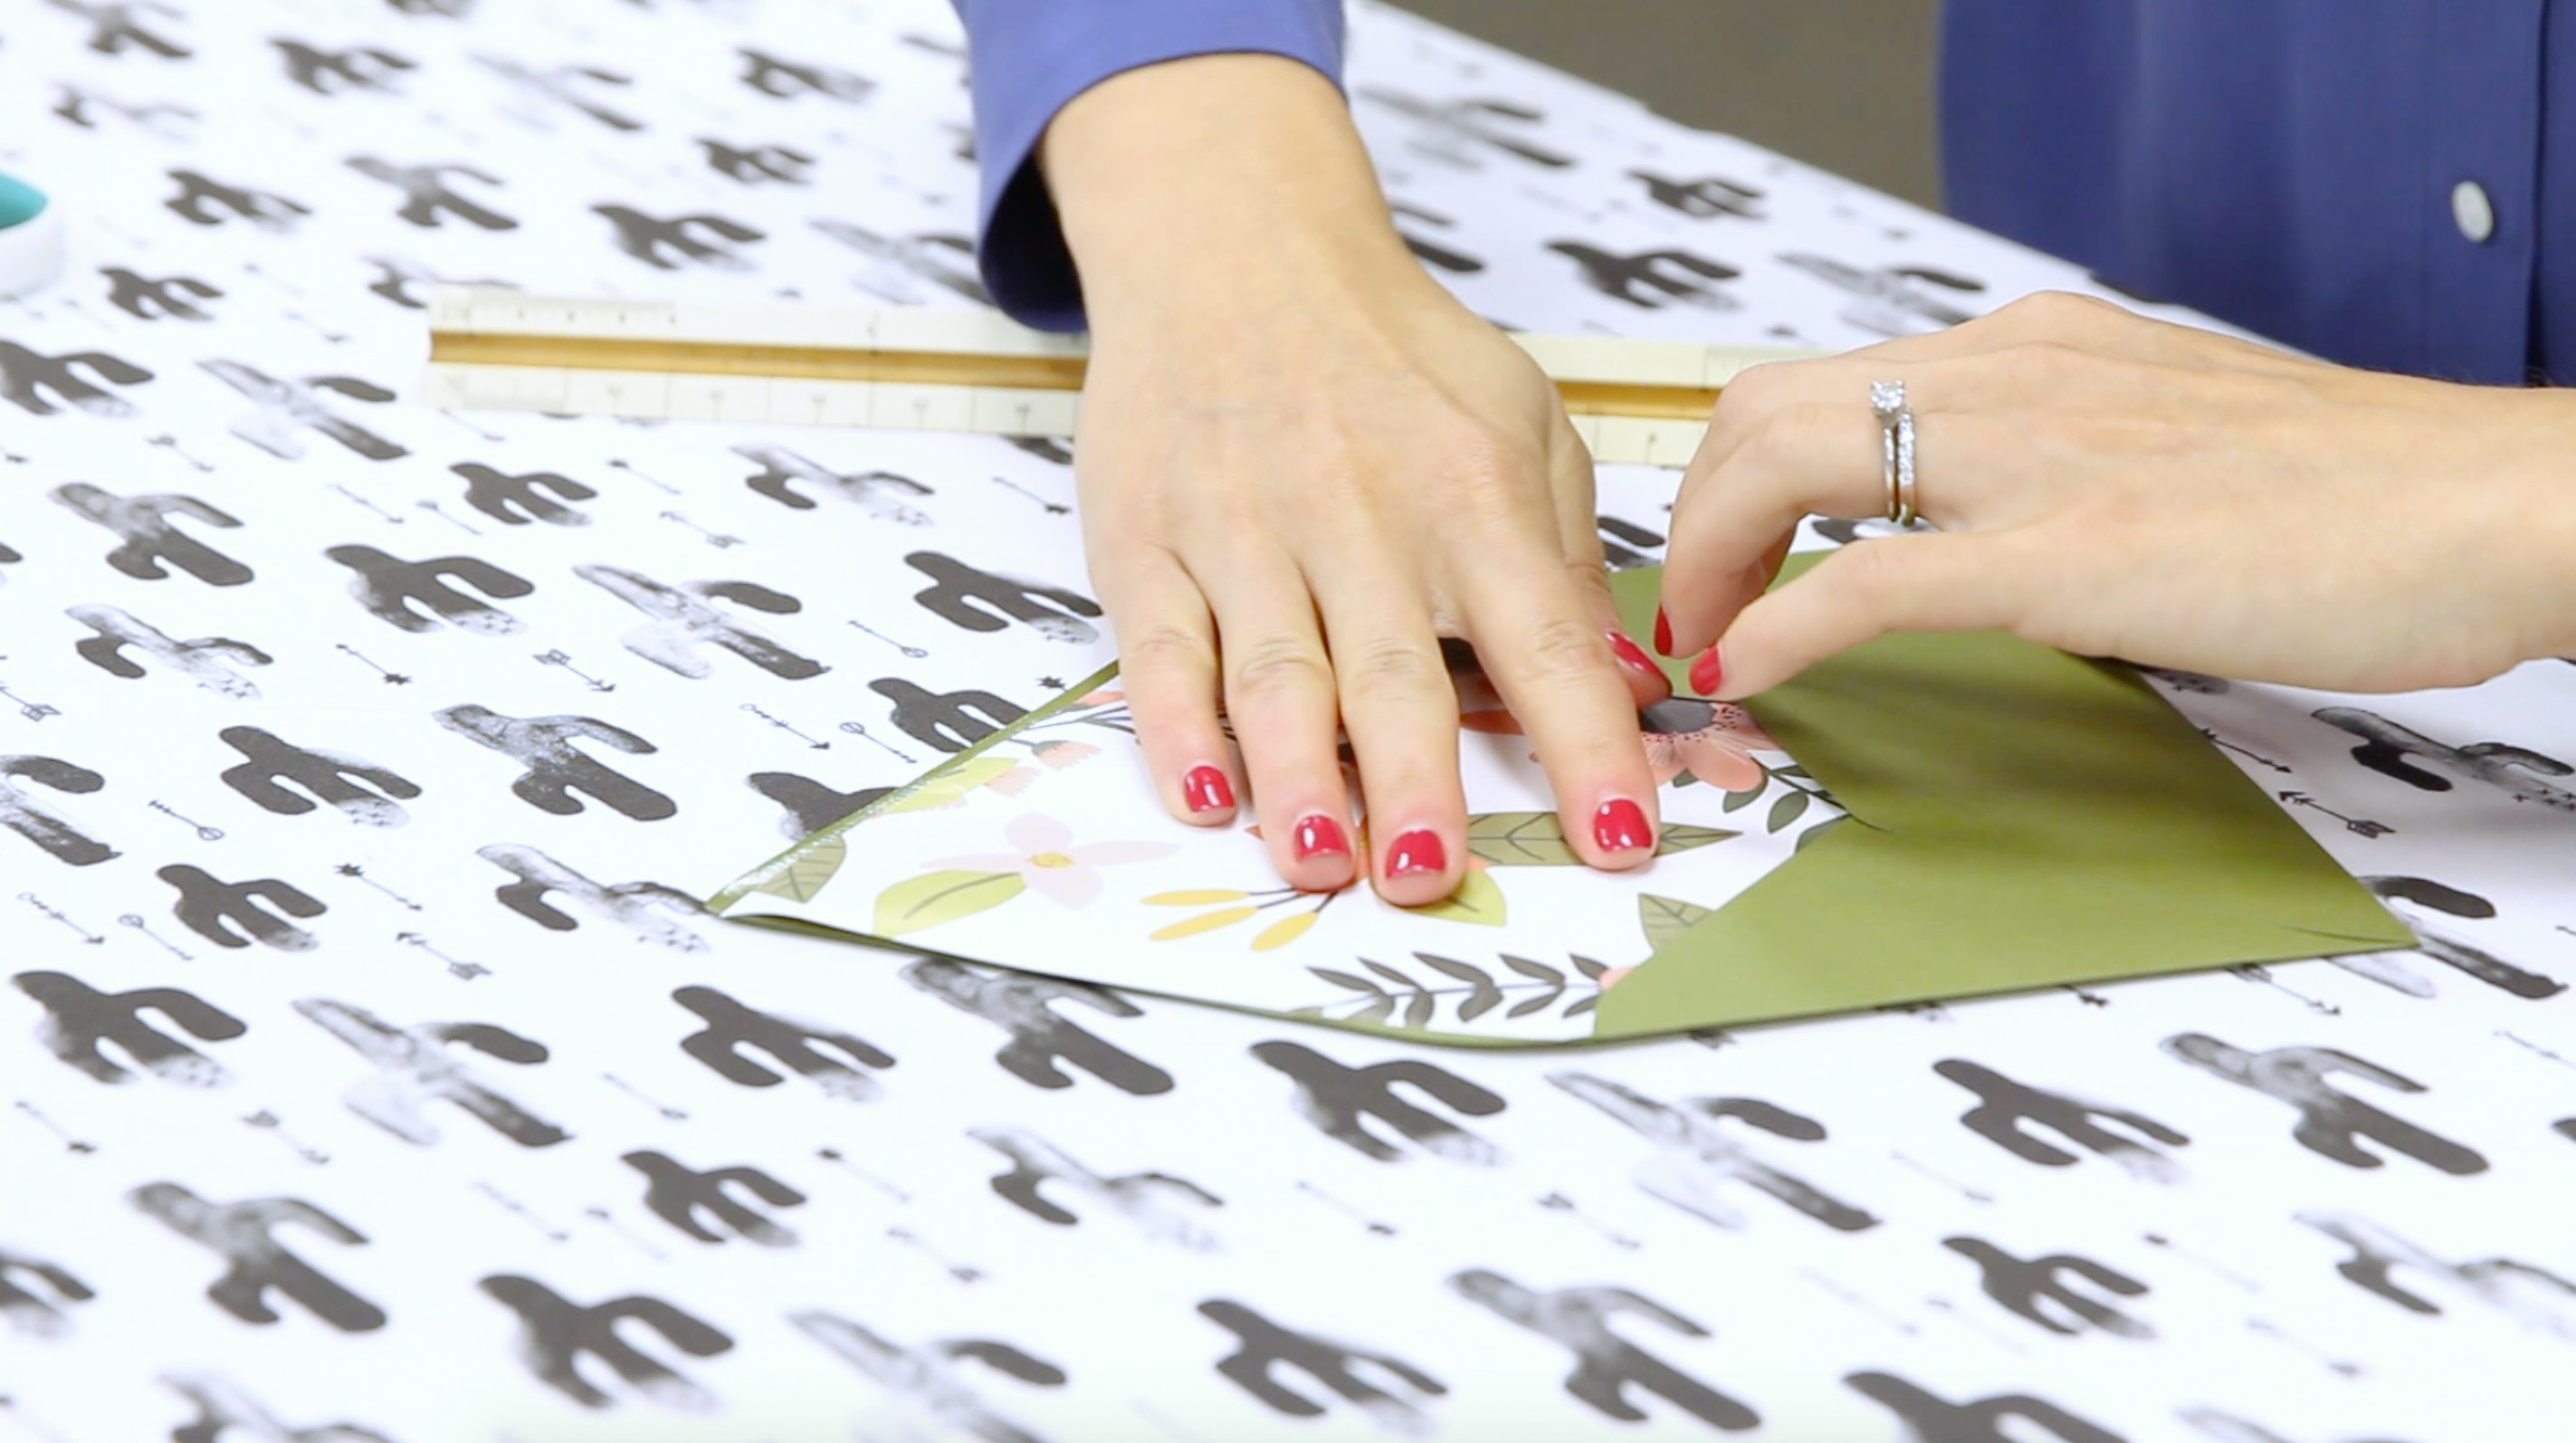 Sliding Liner Paper into Envelope | Spoonflower Blog